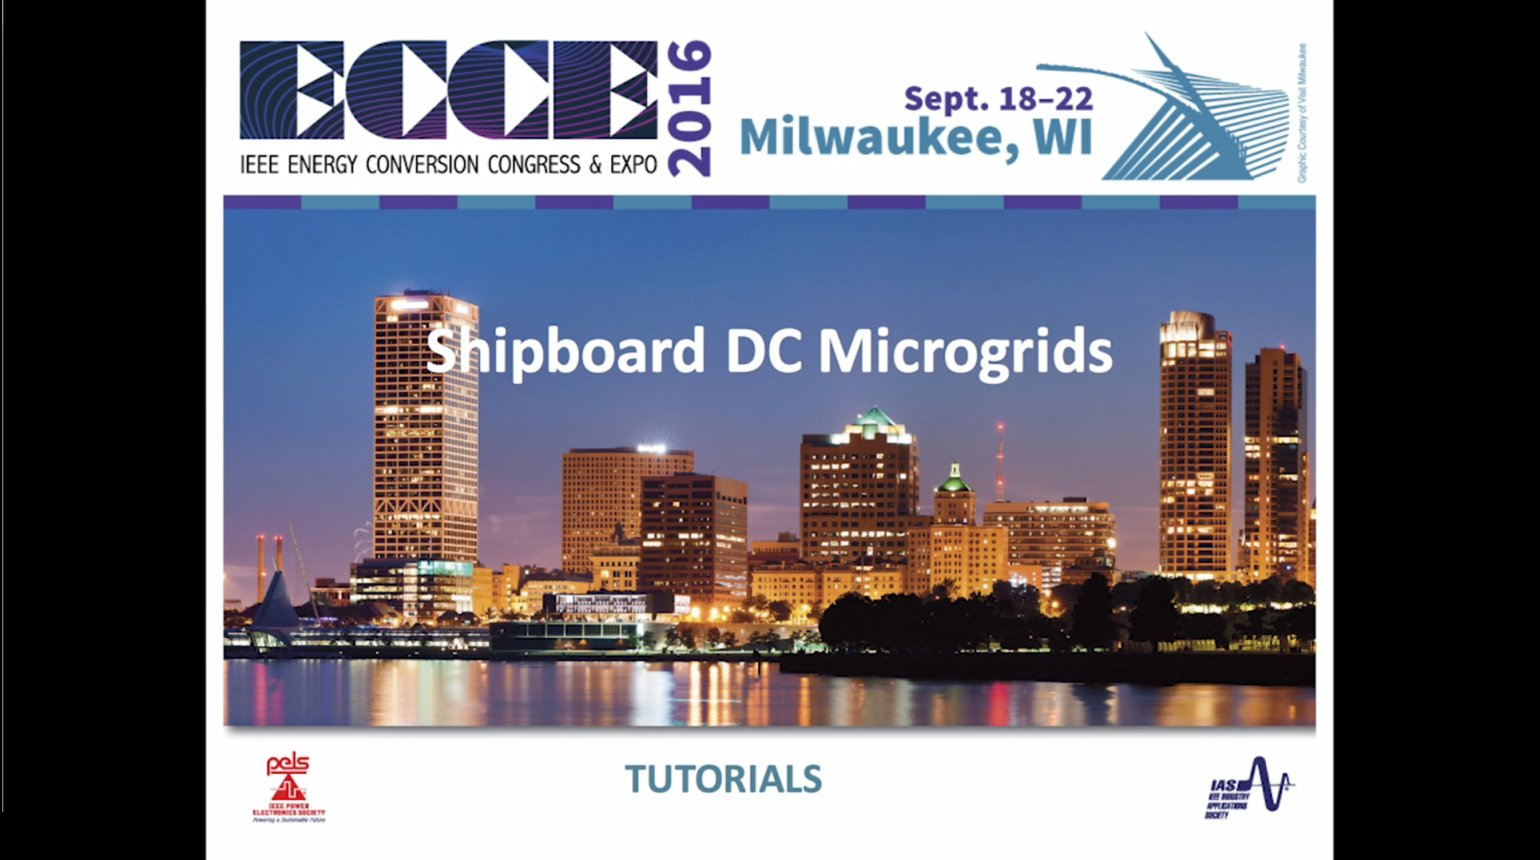 Shipboard DC Microgrids